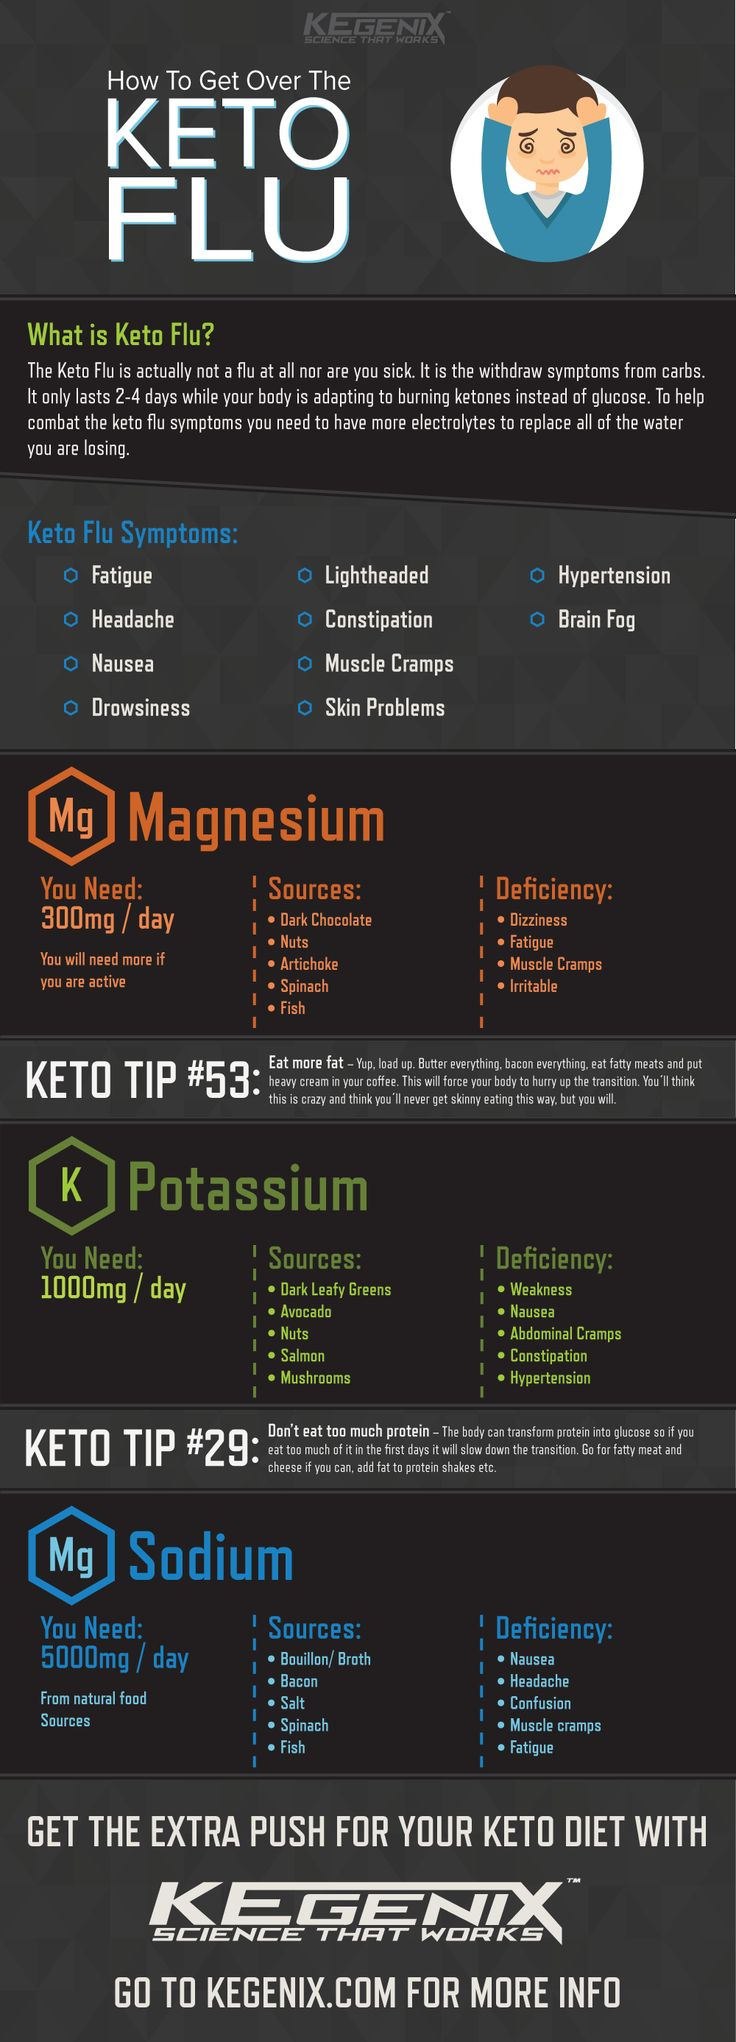 Keep the Keto Flu in check with these tips!